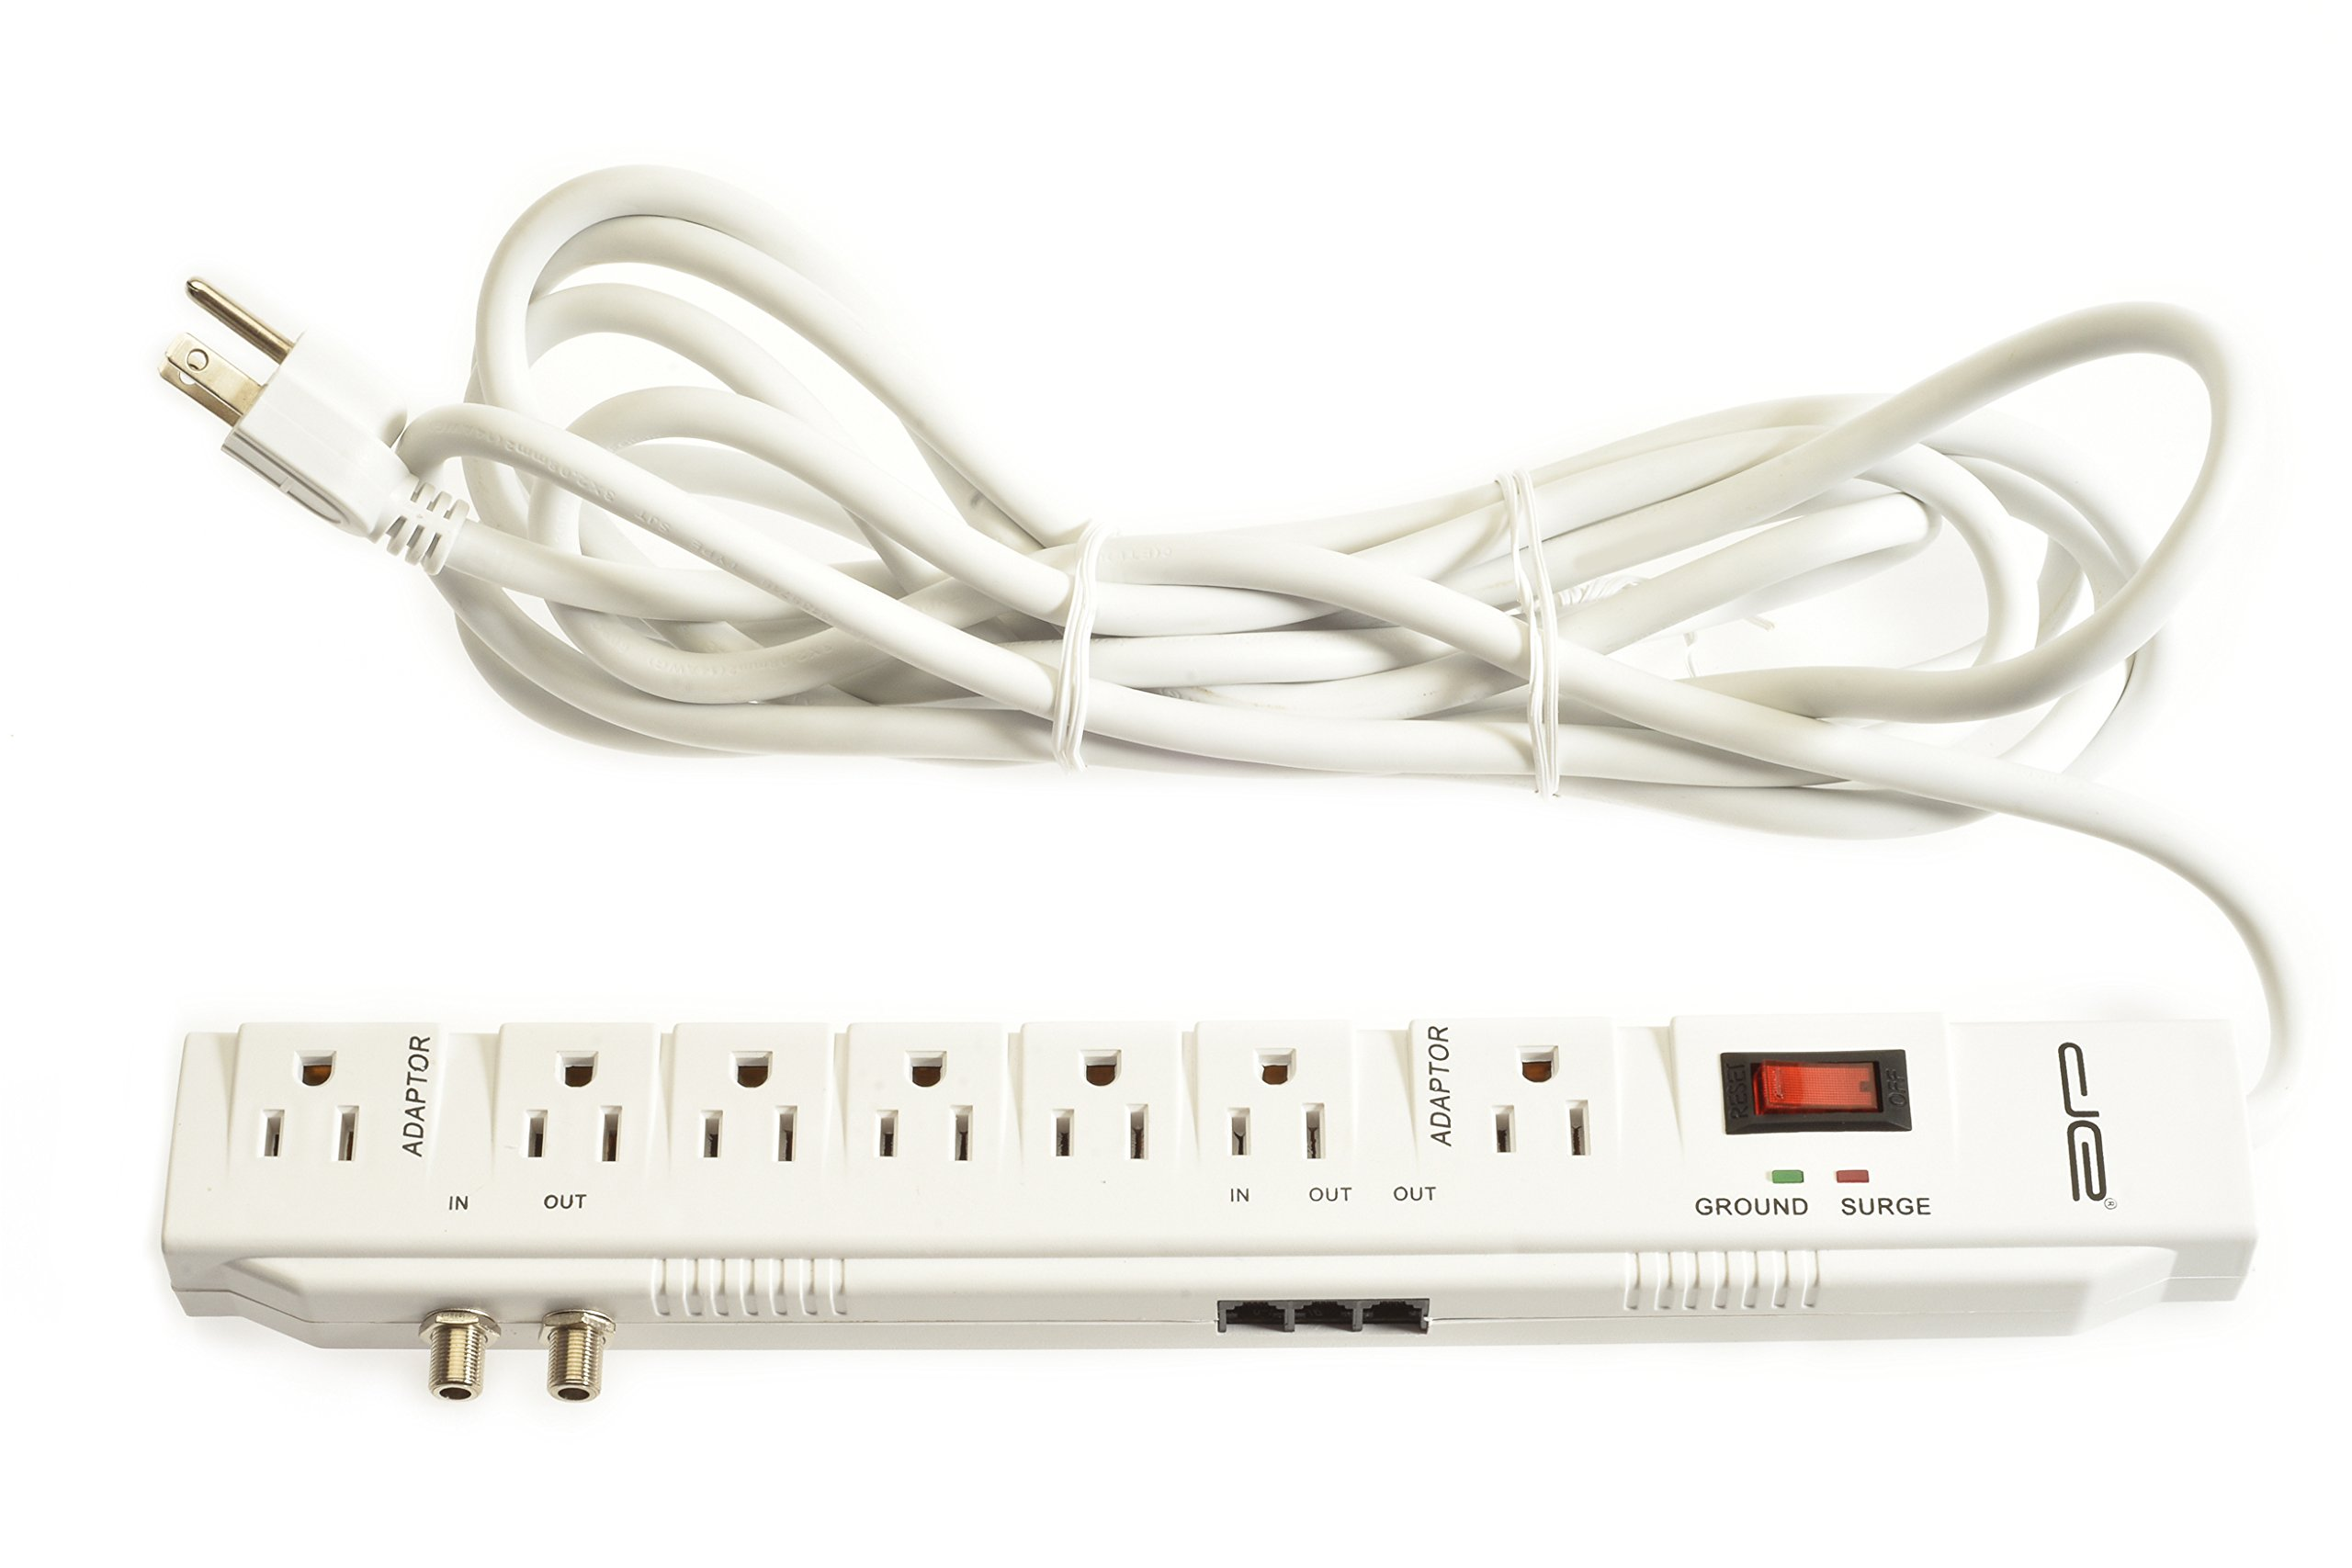 Digital Energy 15 Foot Long 7-Outlet 2400 Joules Surge Protector Power Strip, Heavy Duty 14 AWG Wire, ETL Certified, 15-Ft Long Extension Cord